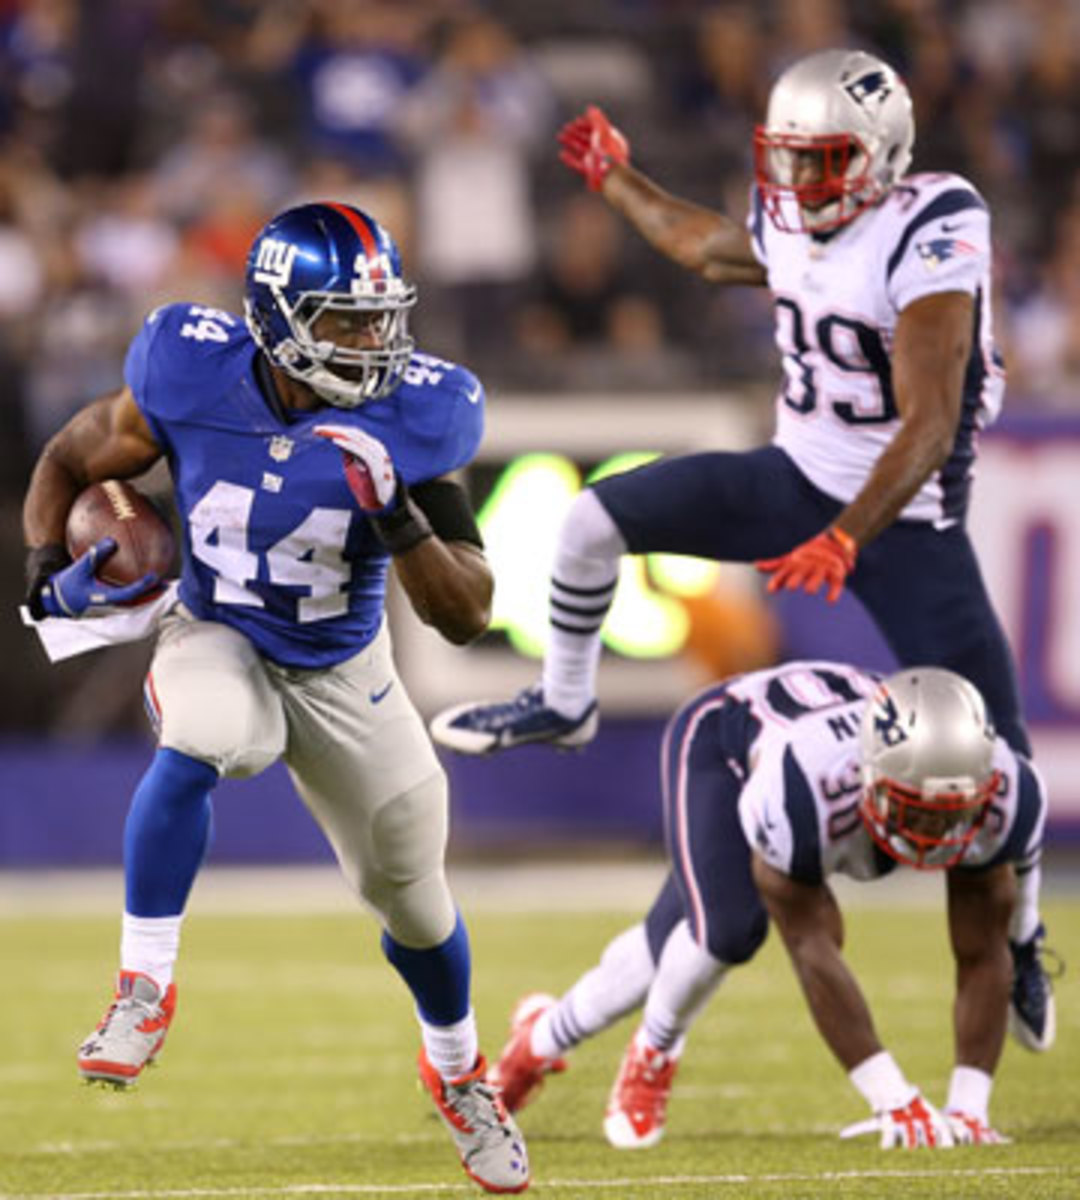 Williams' impressive summer culminated with a feature role against the Pats in the preseason finale. (John Minchillo/AP)